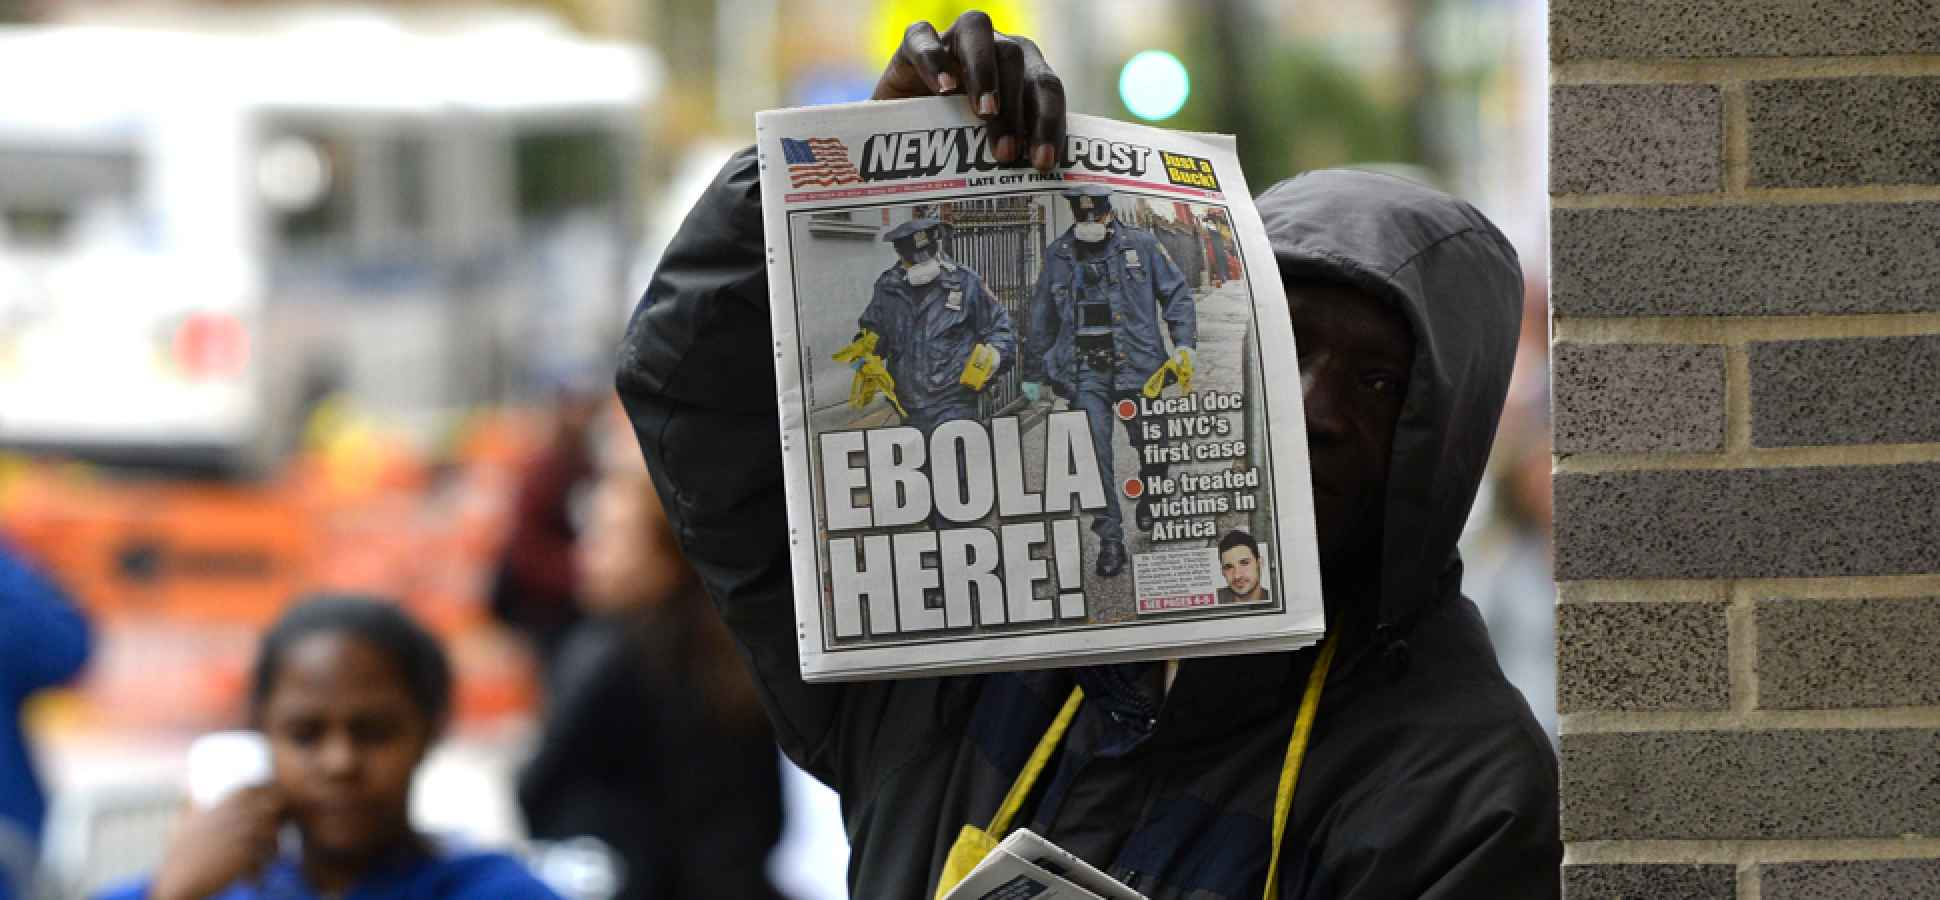 Your Employee Is Under Ebola Quarantine. Now What?